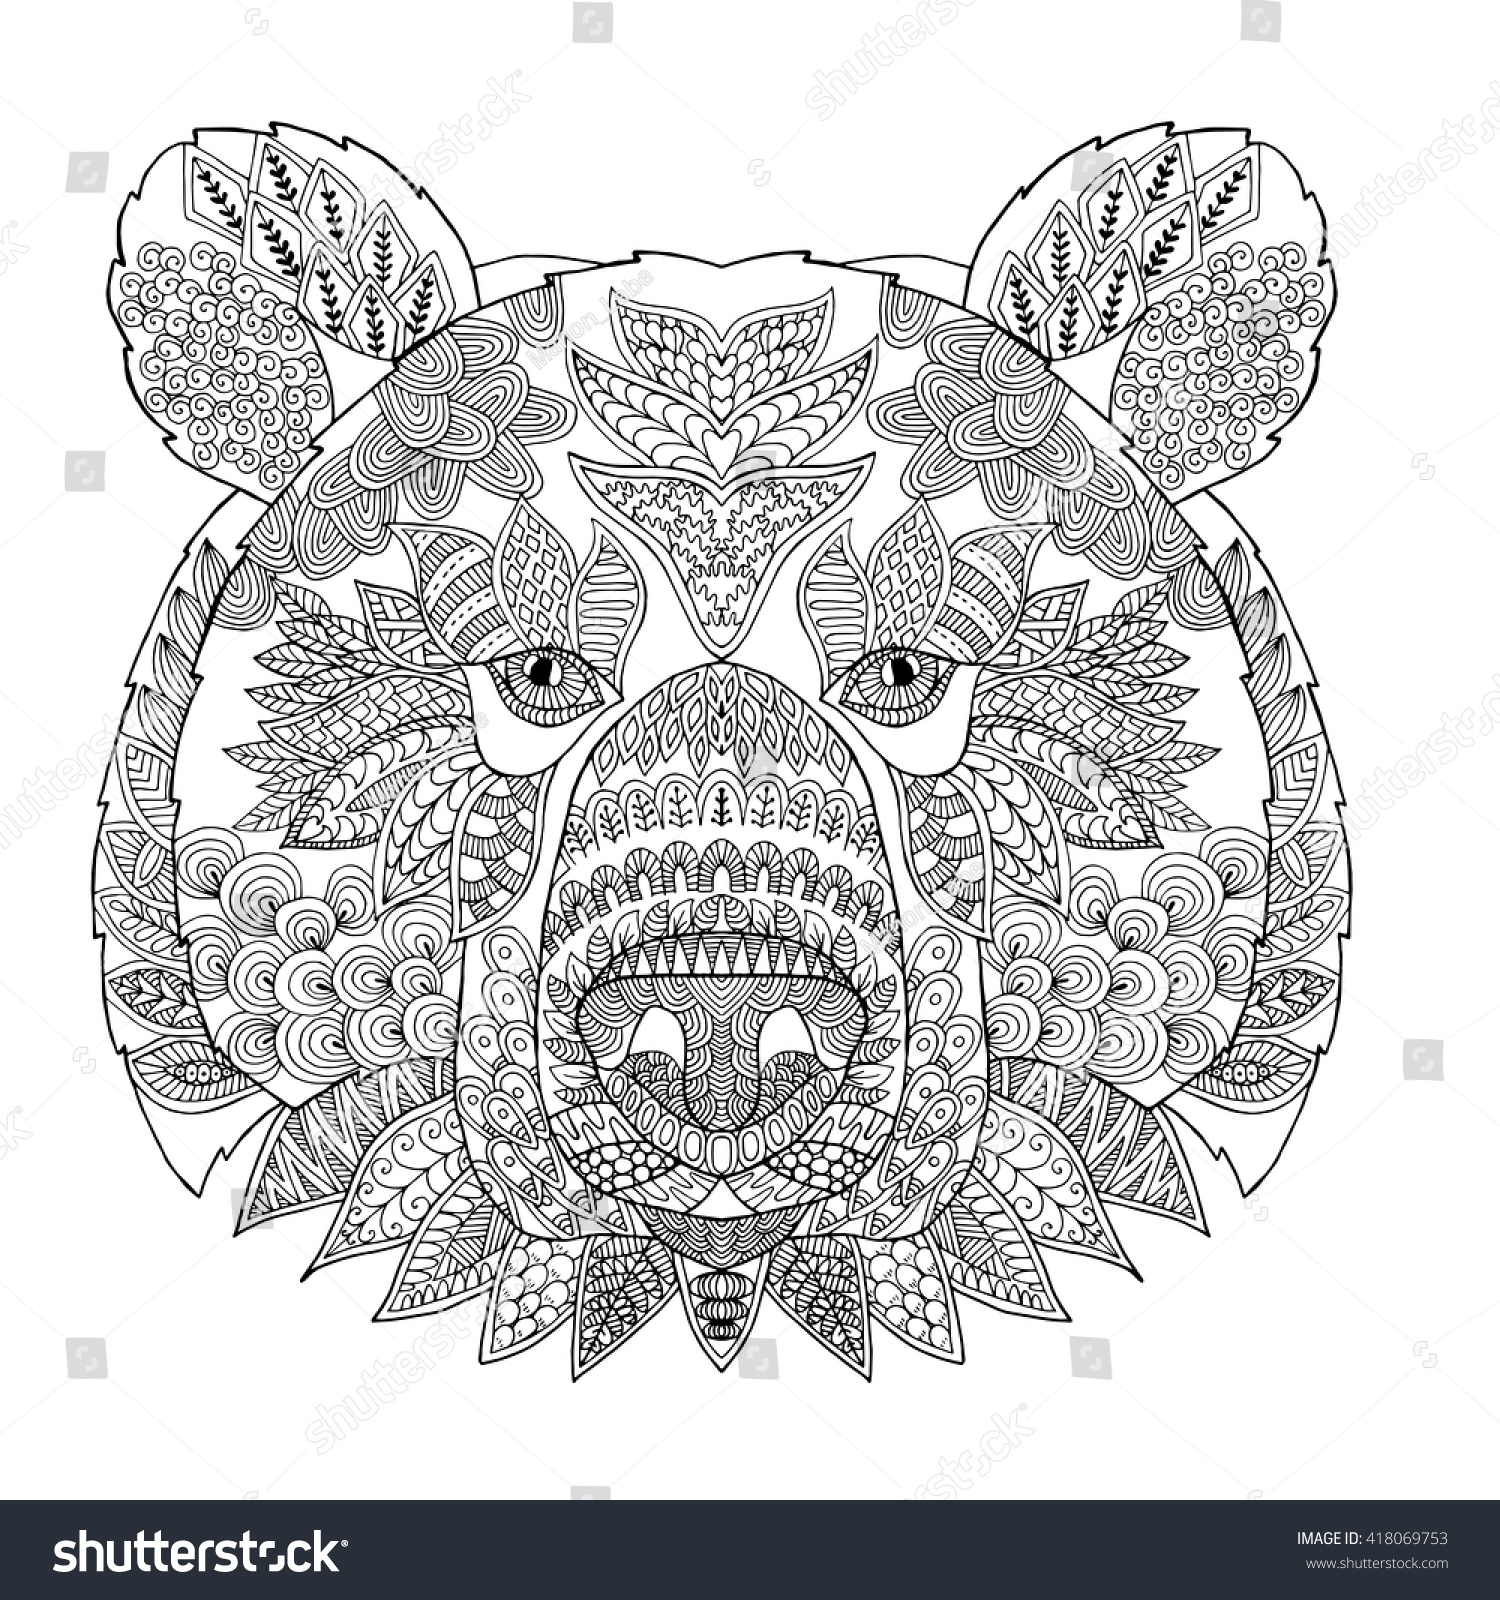 Zentangle Stylized Doodle Vector Bear Head Stock-Vektorgrafik ...